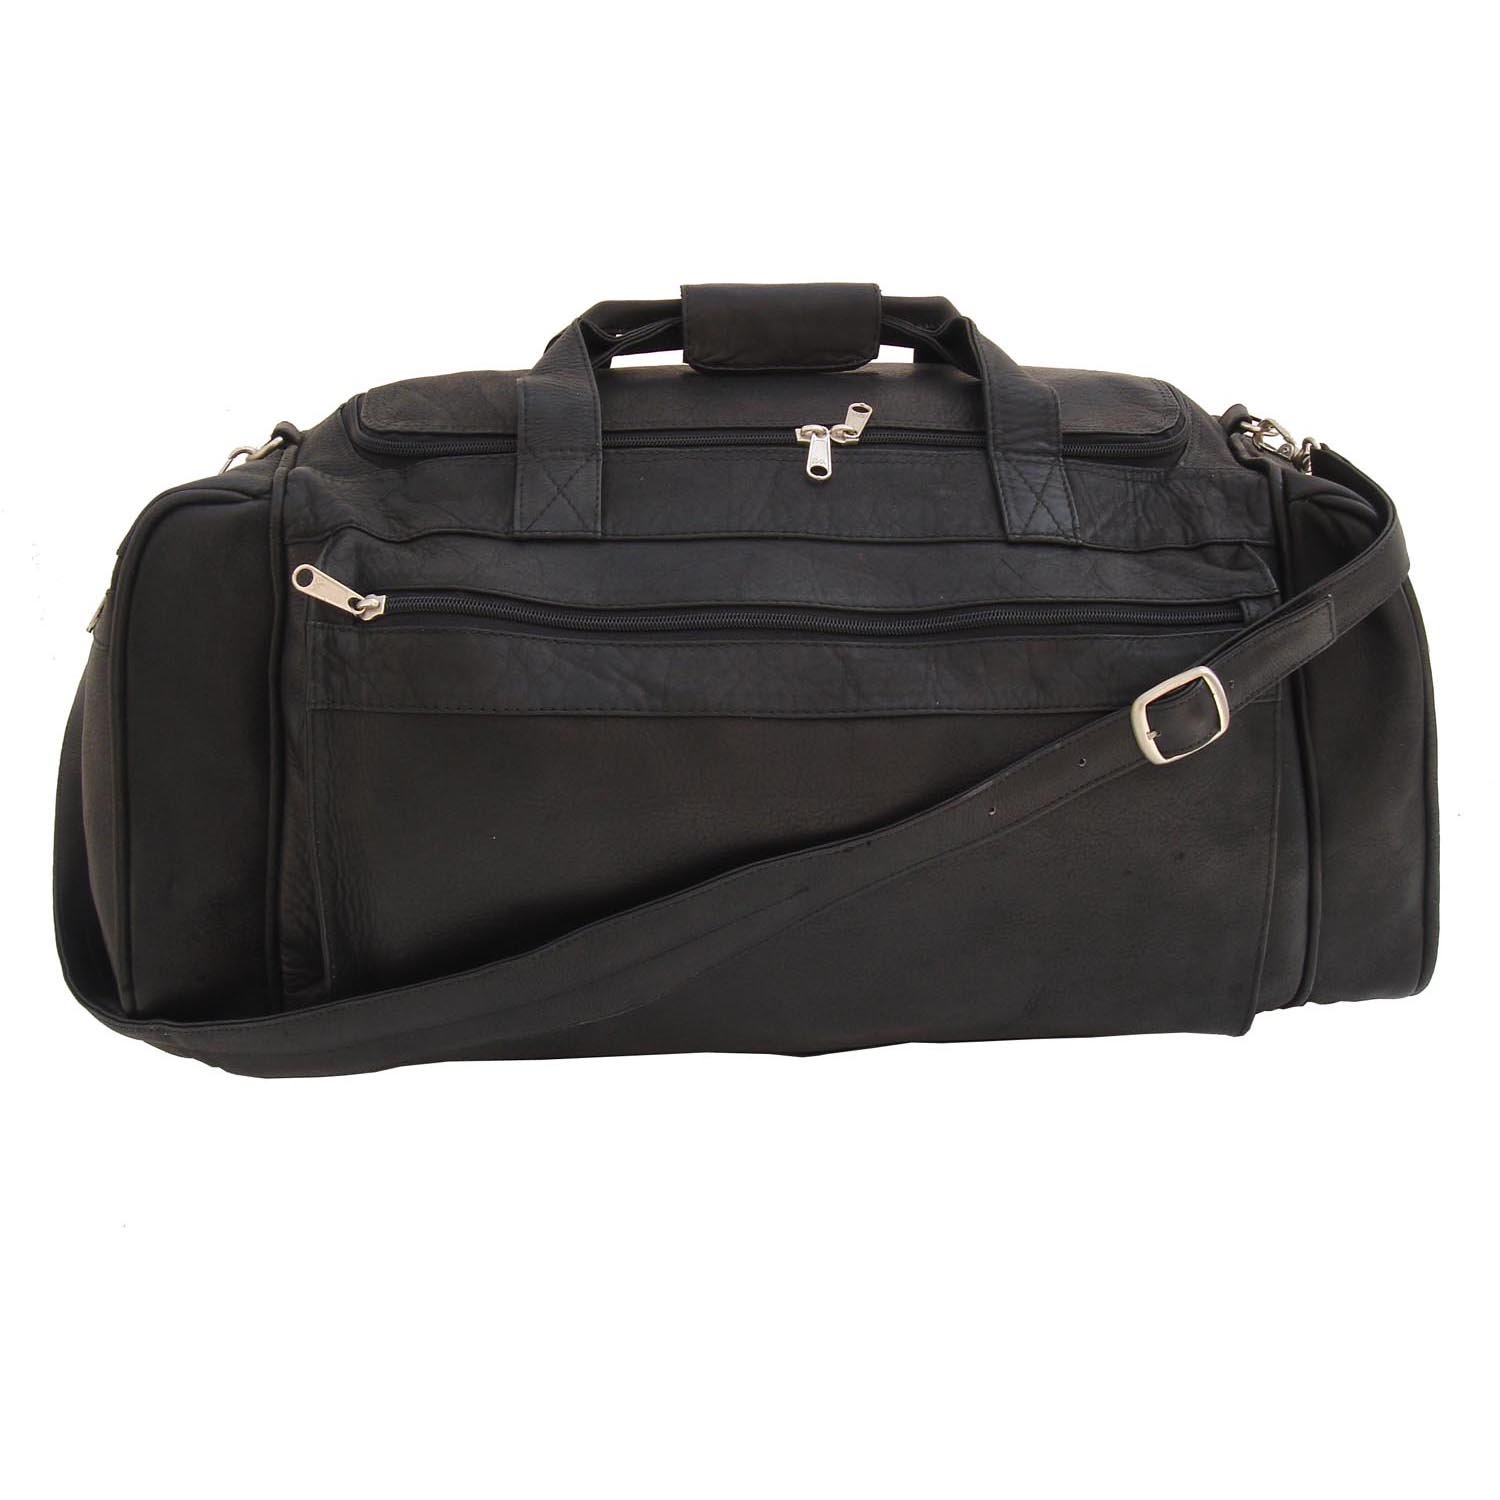 Piel Leather - Carrying Case (Duffel) for Travel Essential